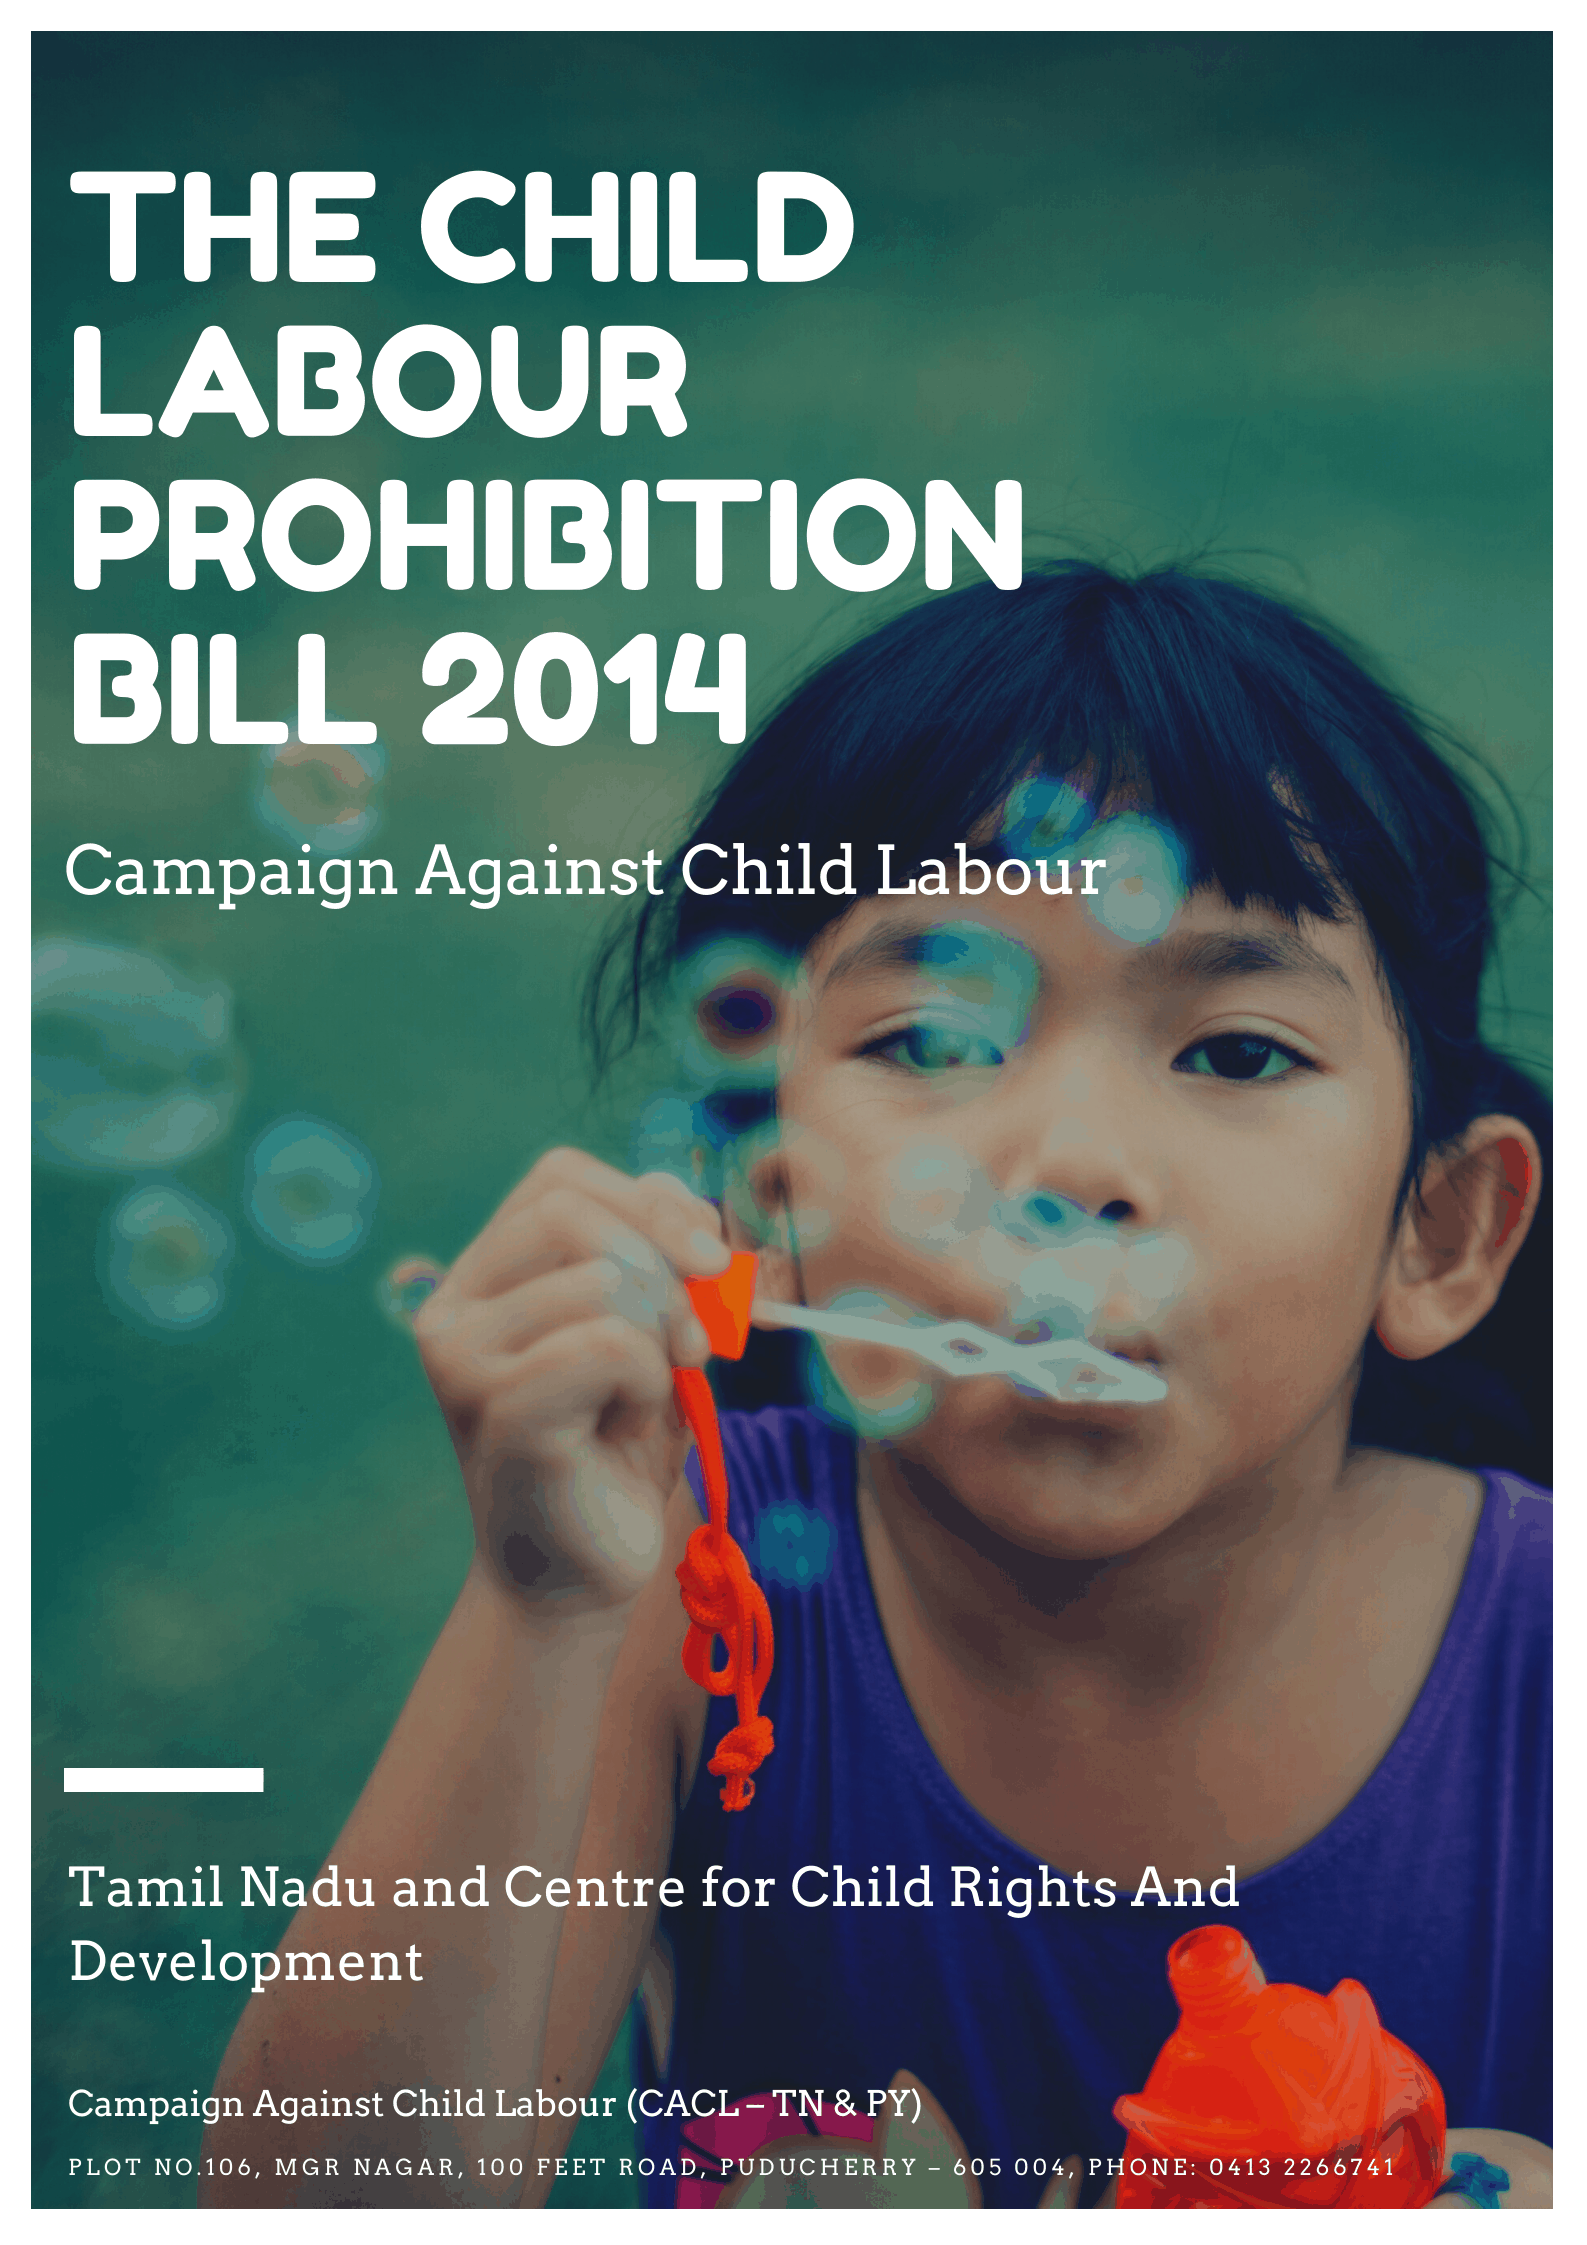 The Child Labour Prohibition Bill 2014